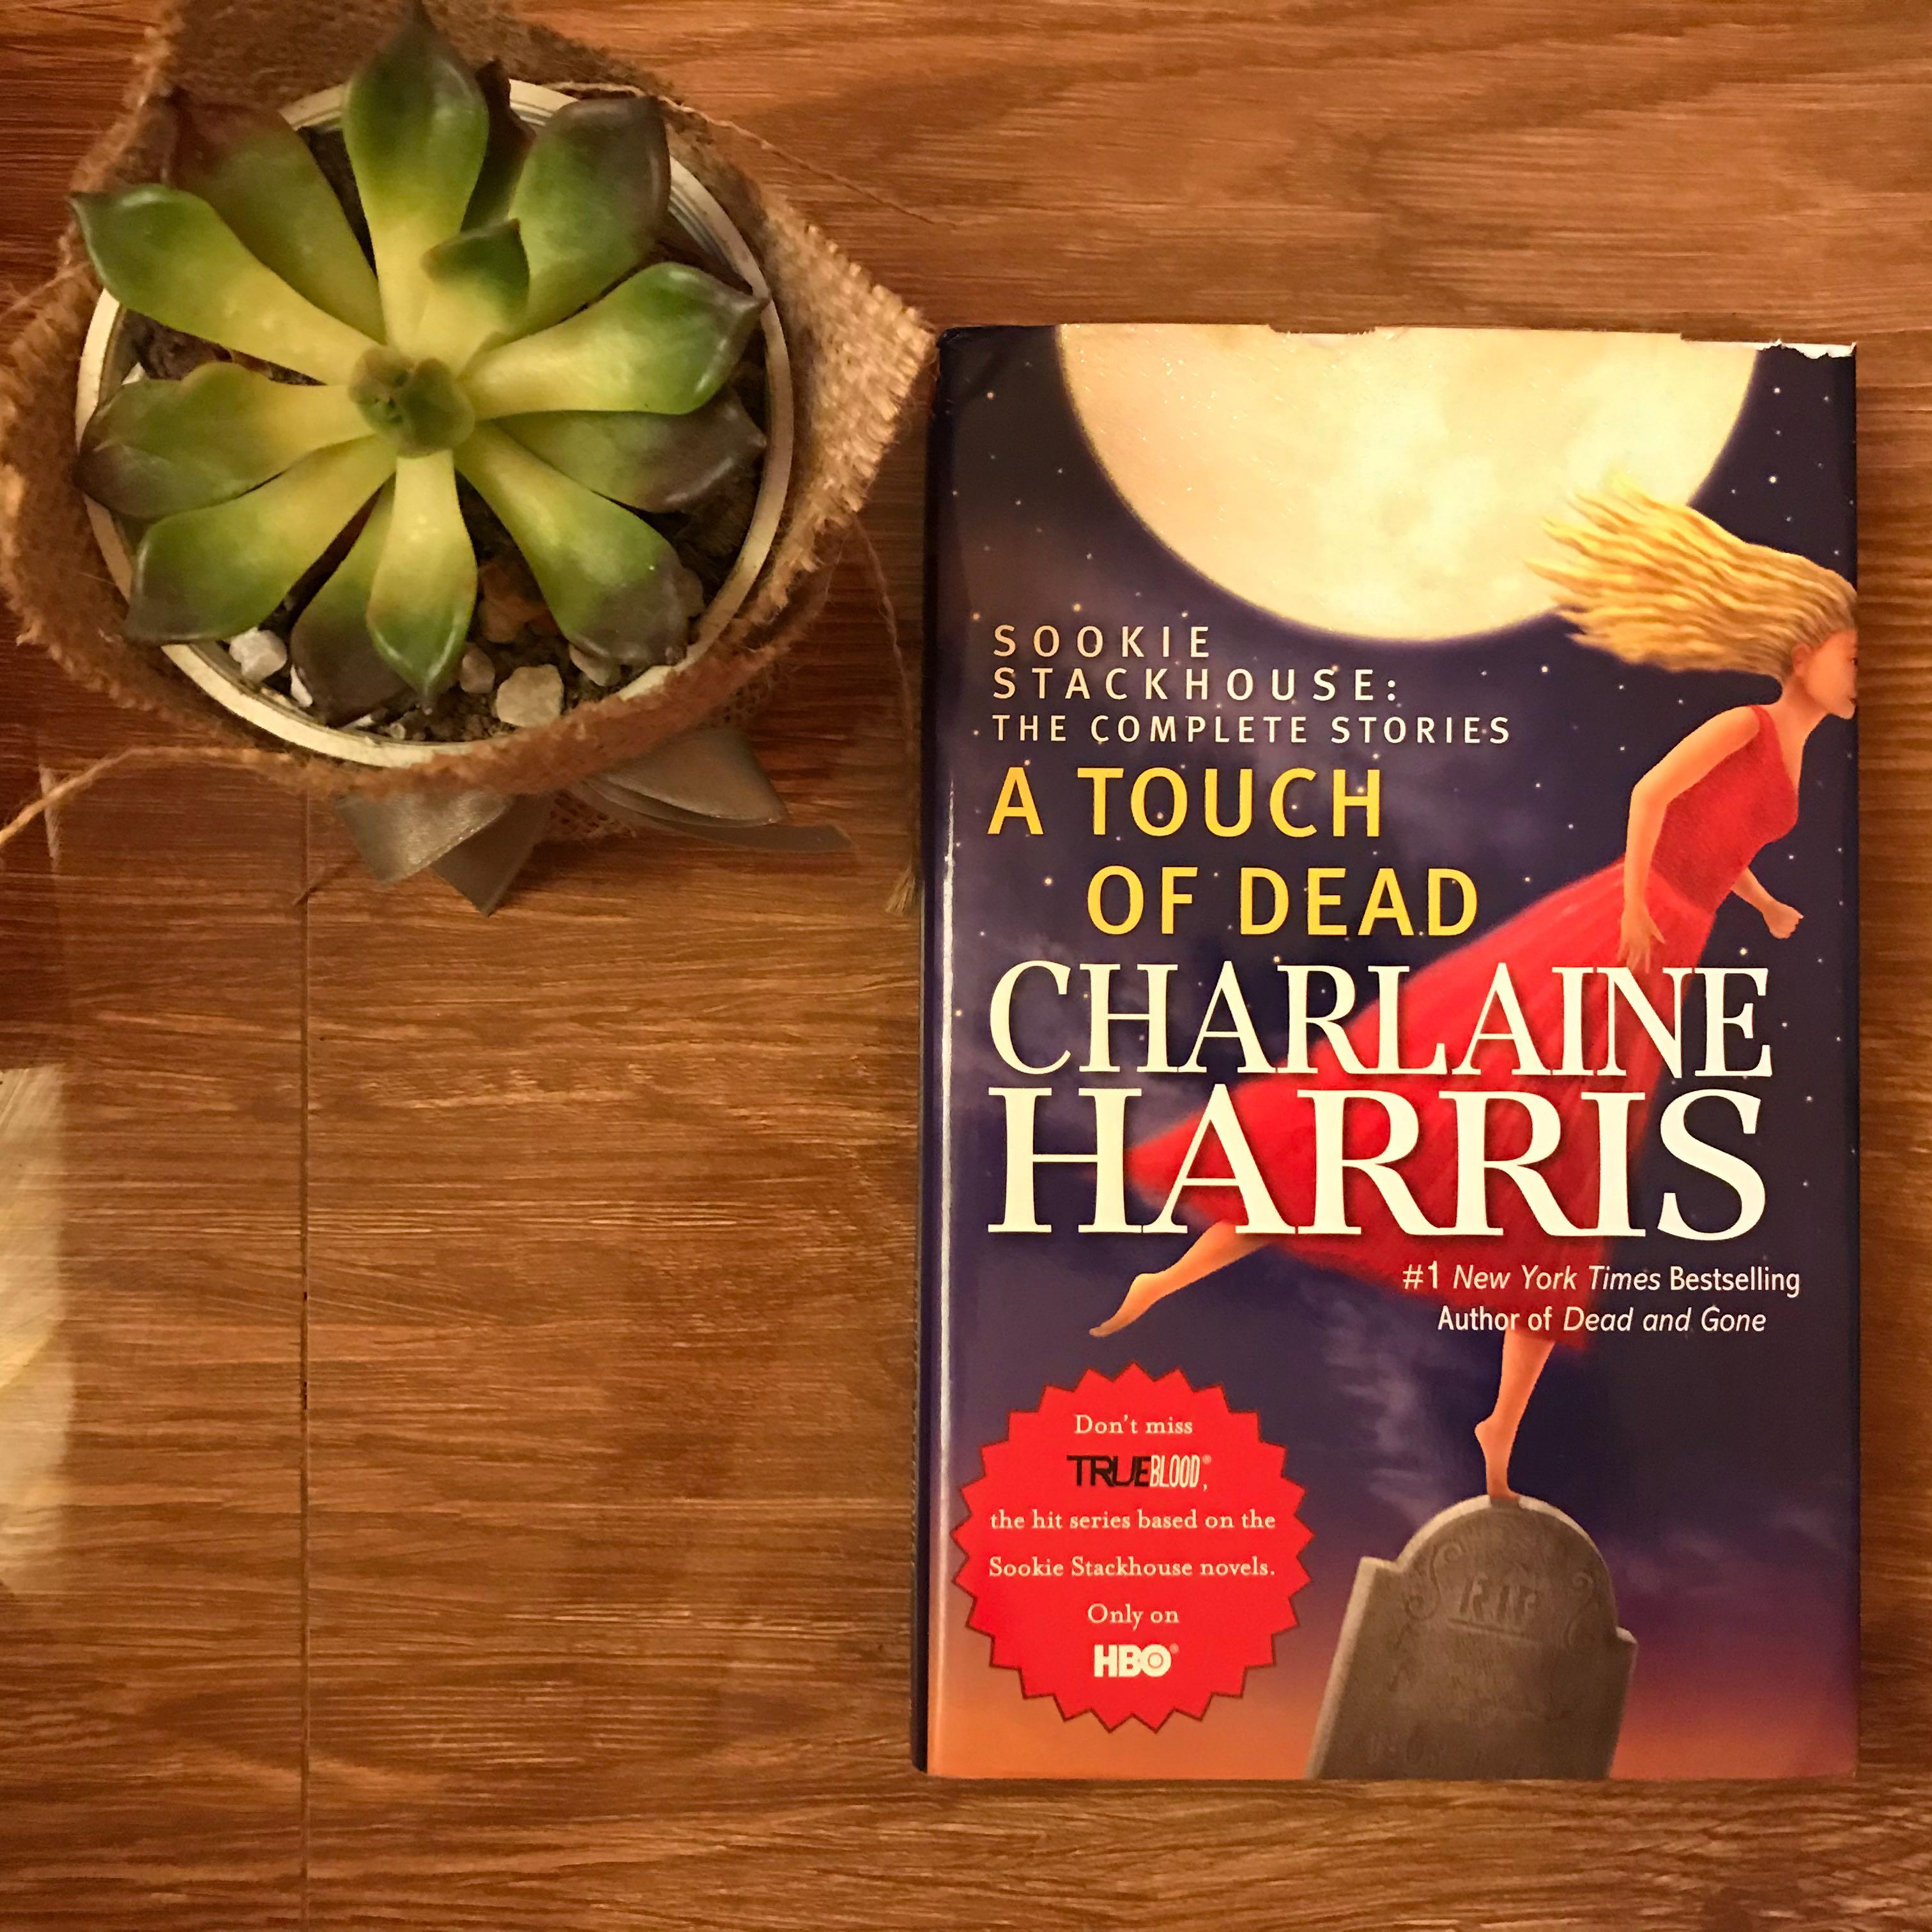 Sookie Stackhouse: The Complete Stories A touch of Dead by Charlaine Harris